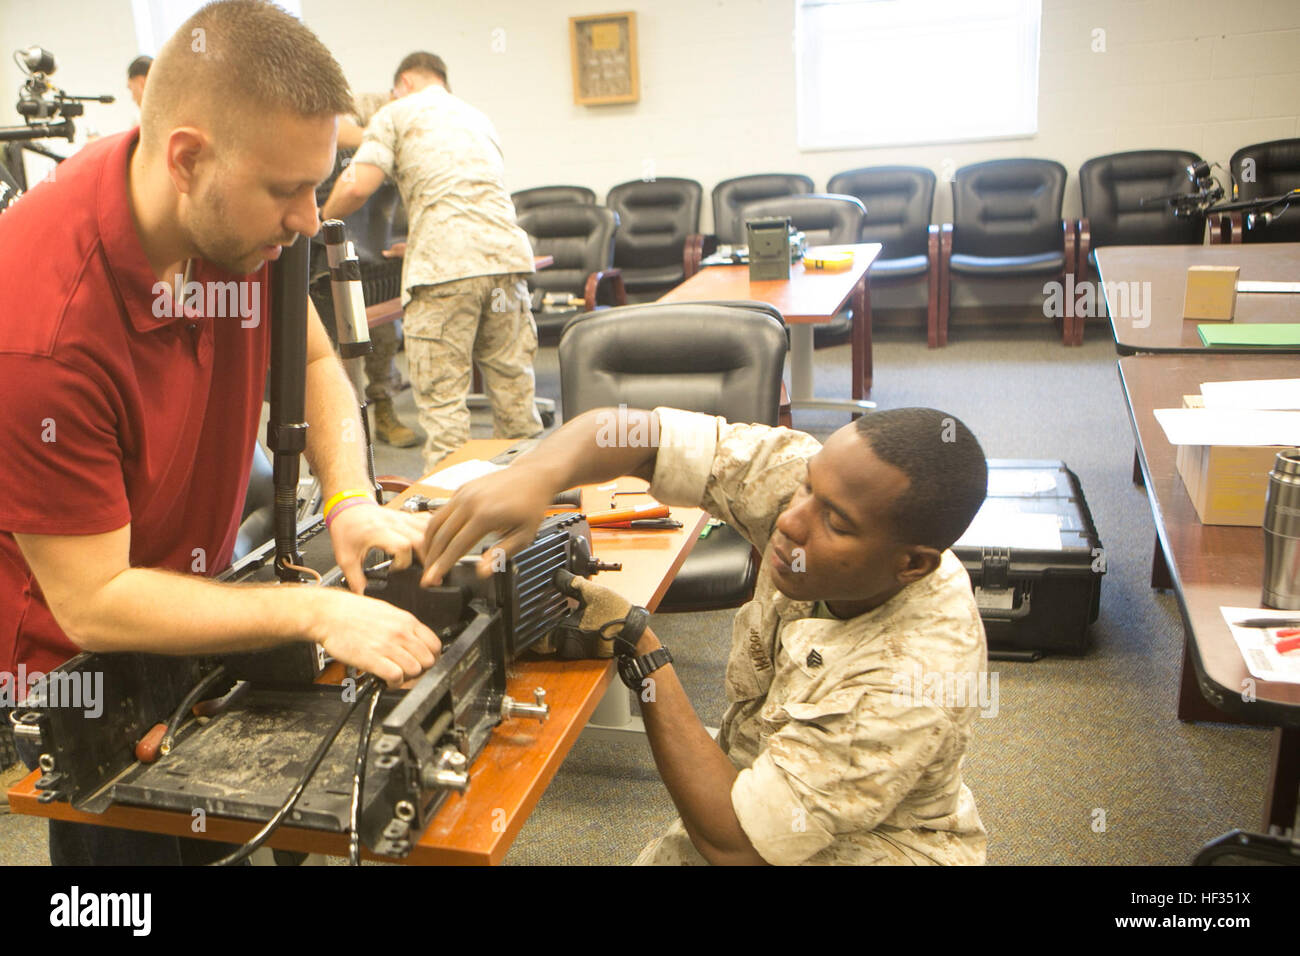 Mr. Daniel Swick, a civilian contractor, helps Sgt. Kharlange Joseph, an explosive ordnance disposal technician - Stock Image